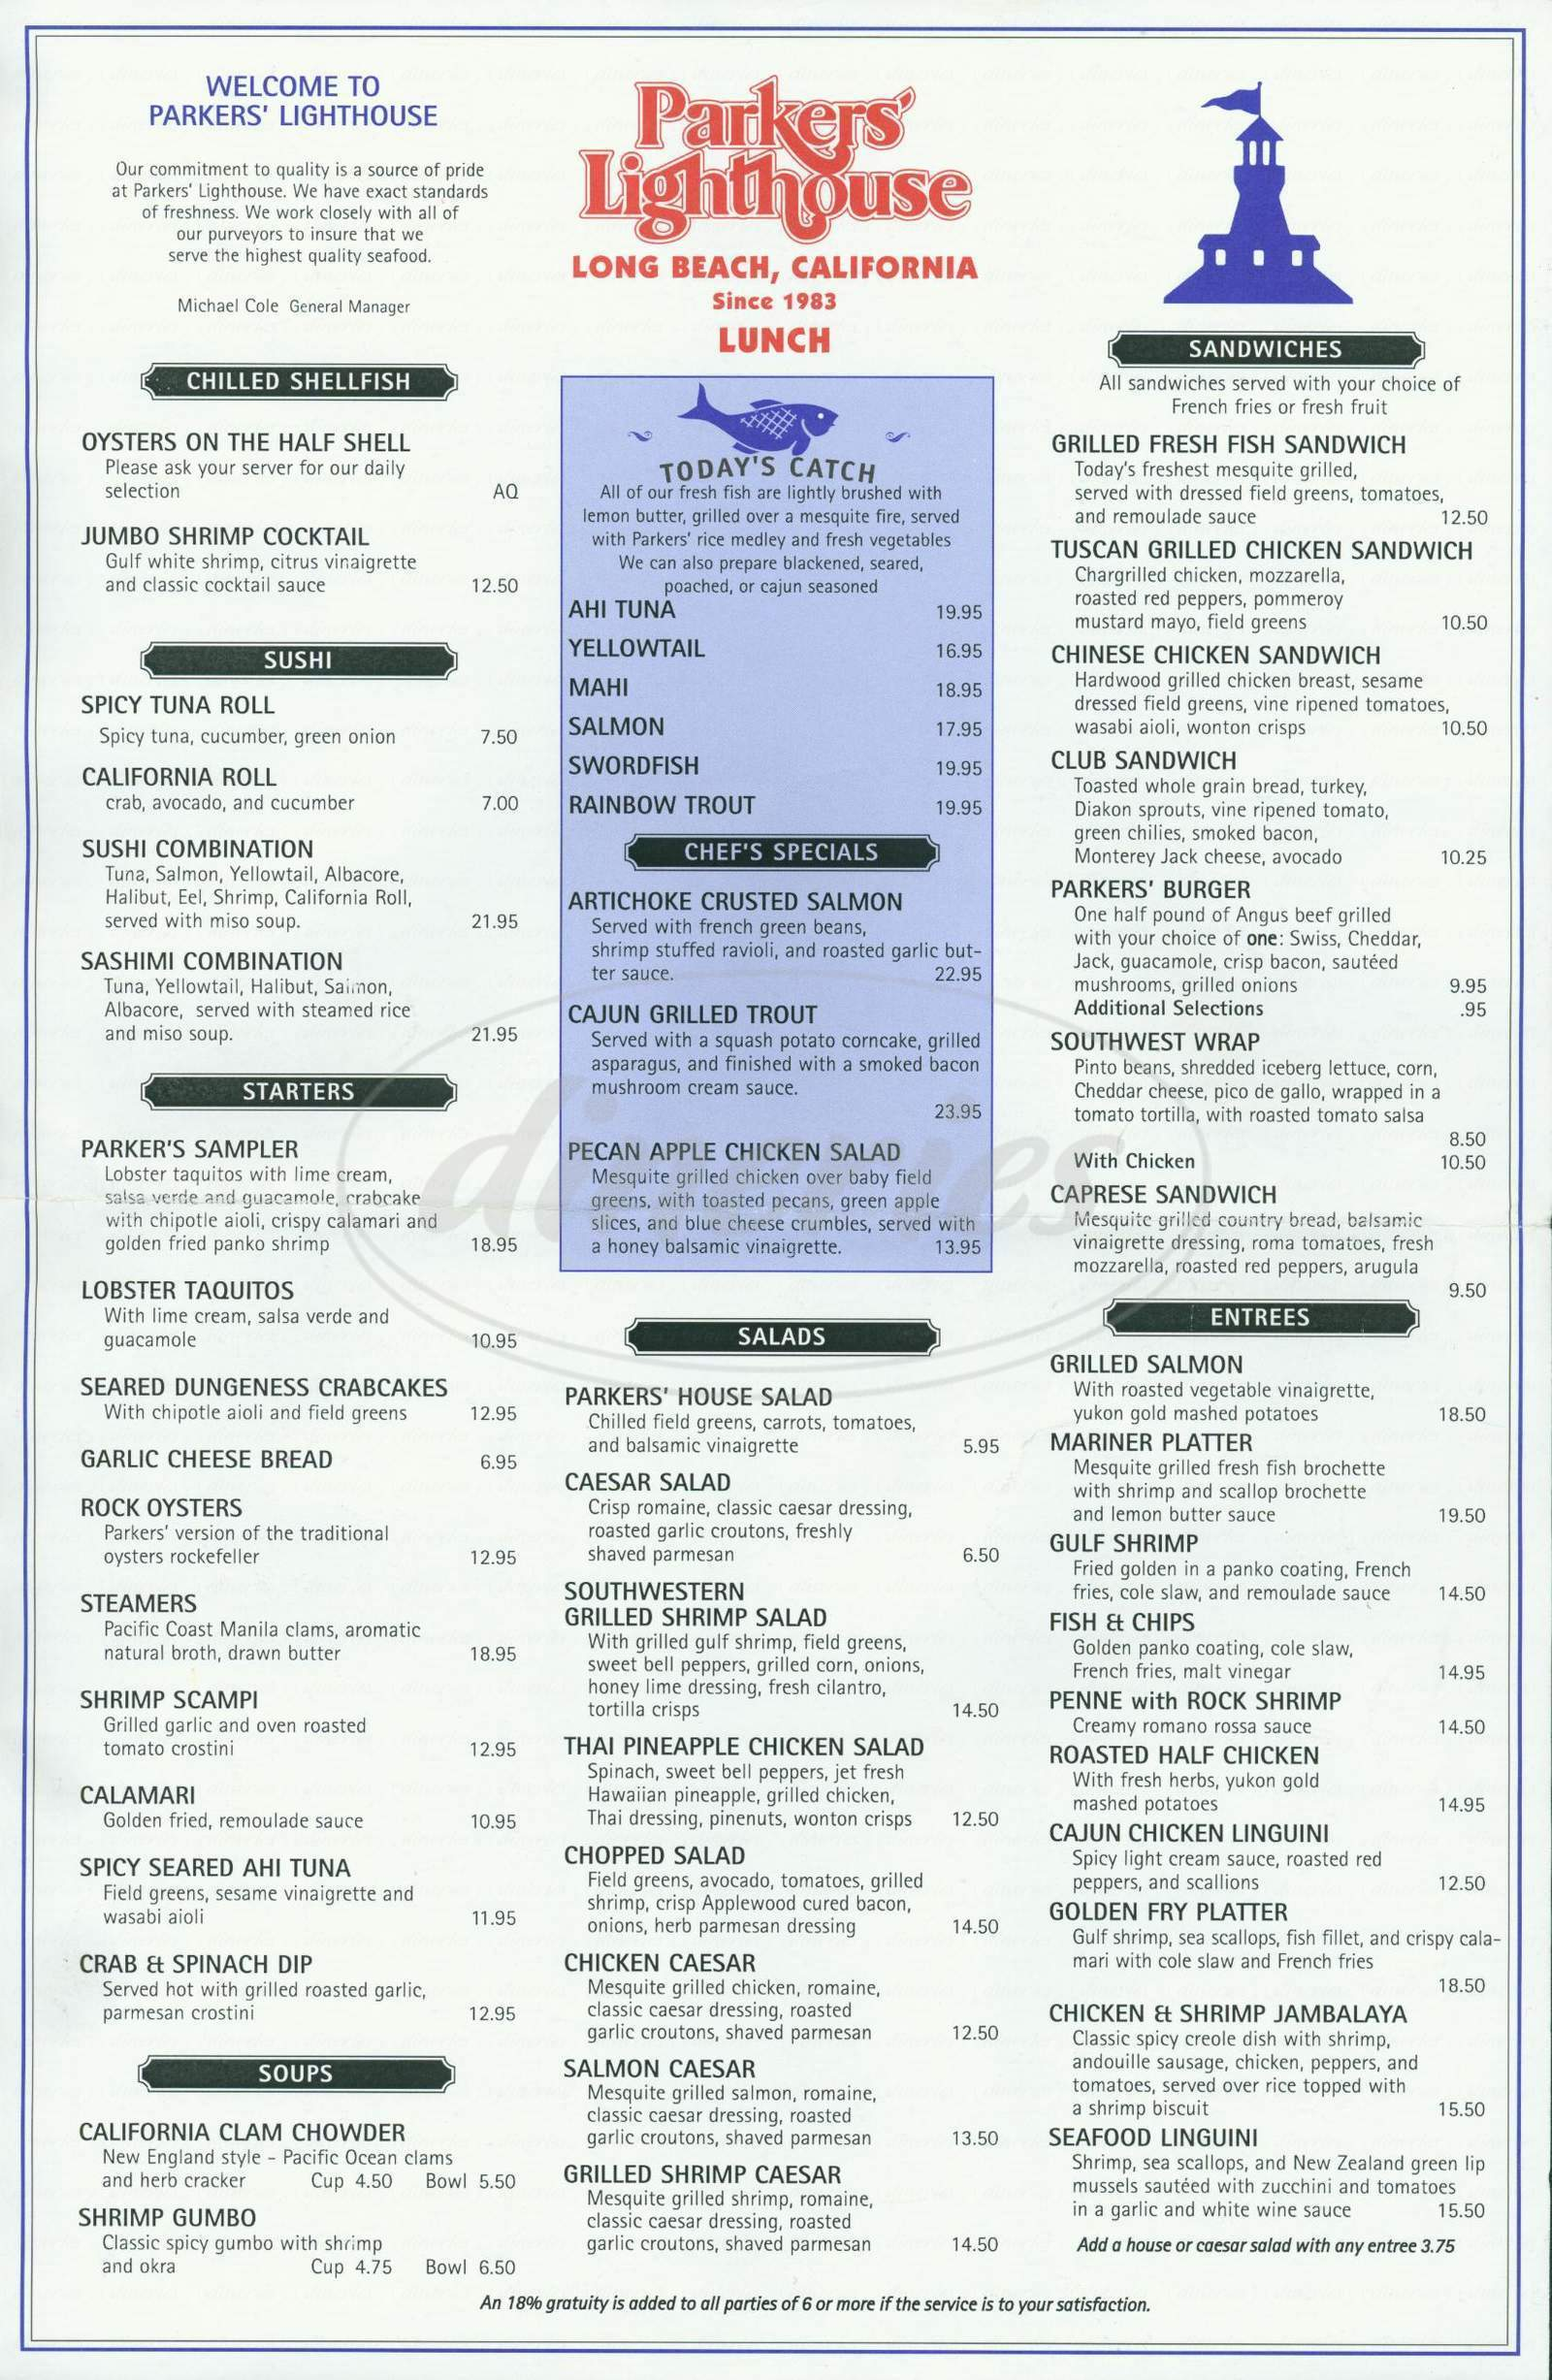 menu for Parkers' Lighthouse